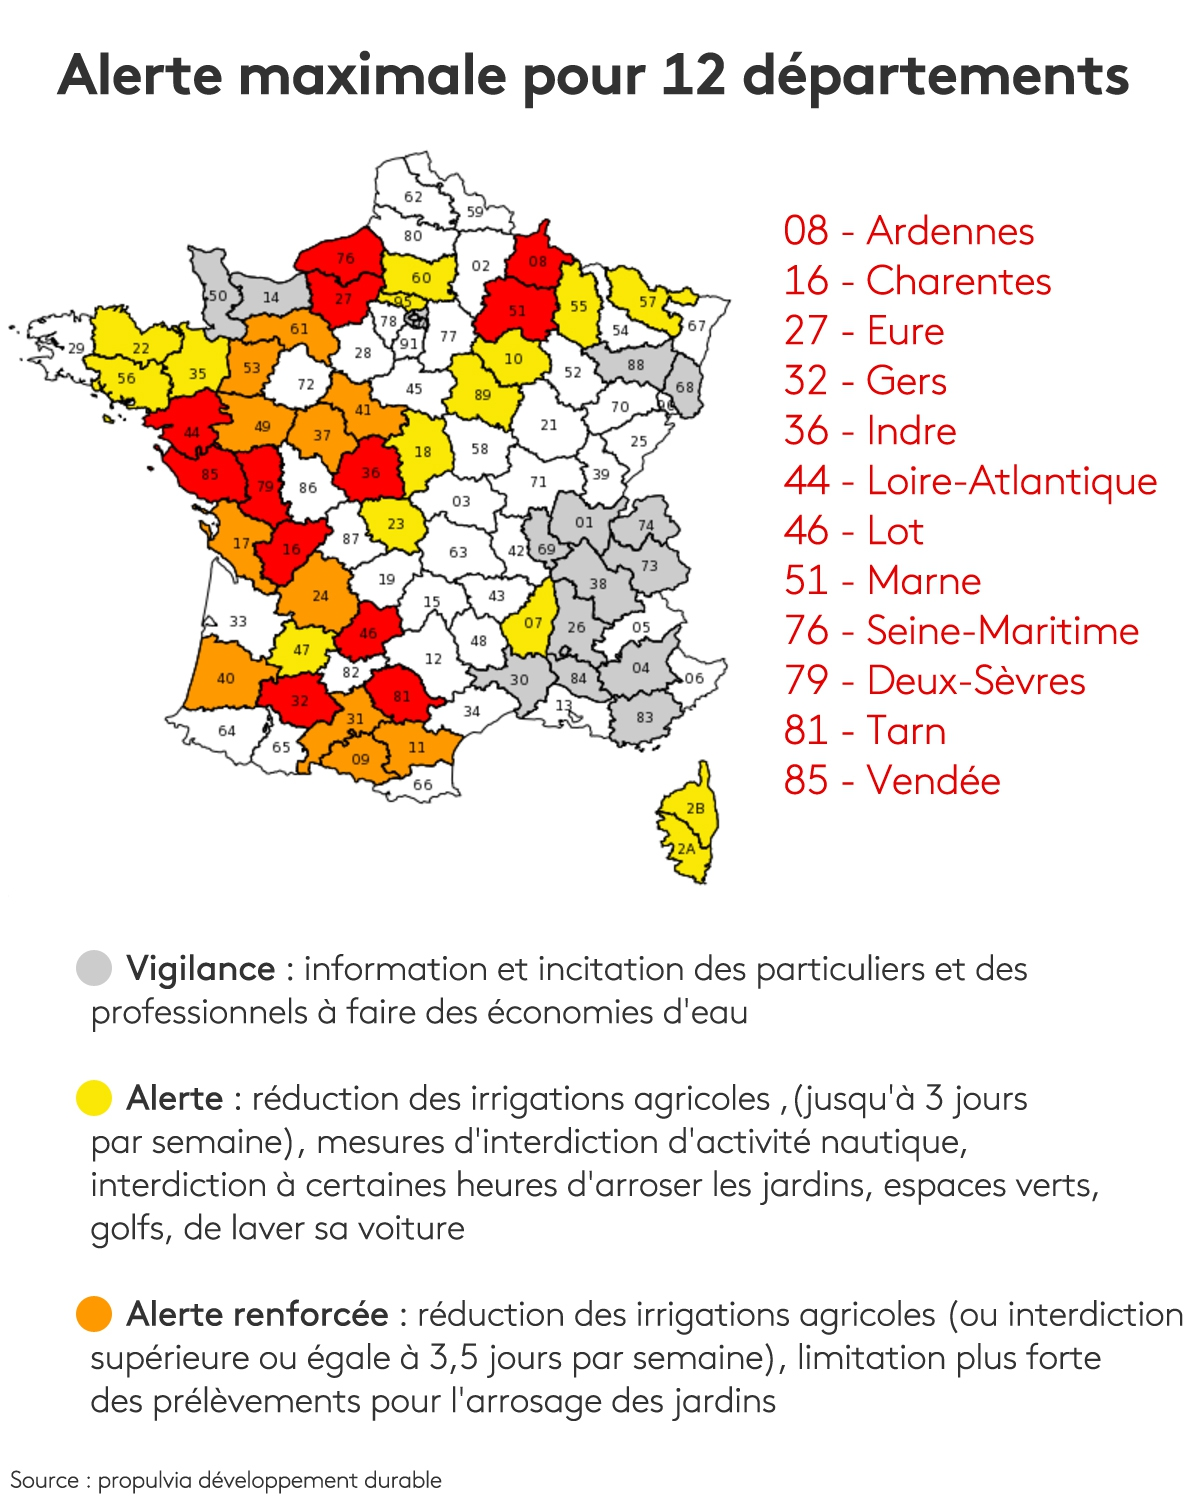 Restriction sur l\'irrigation: alerte maximale dans 12 départements